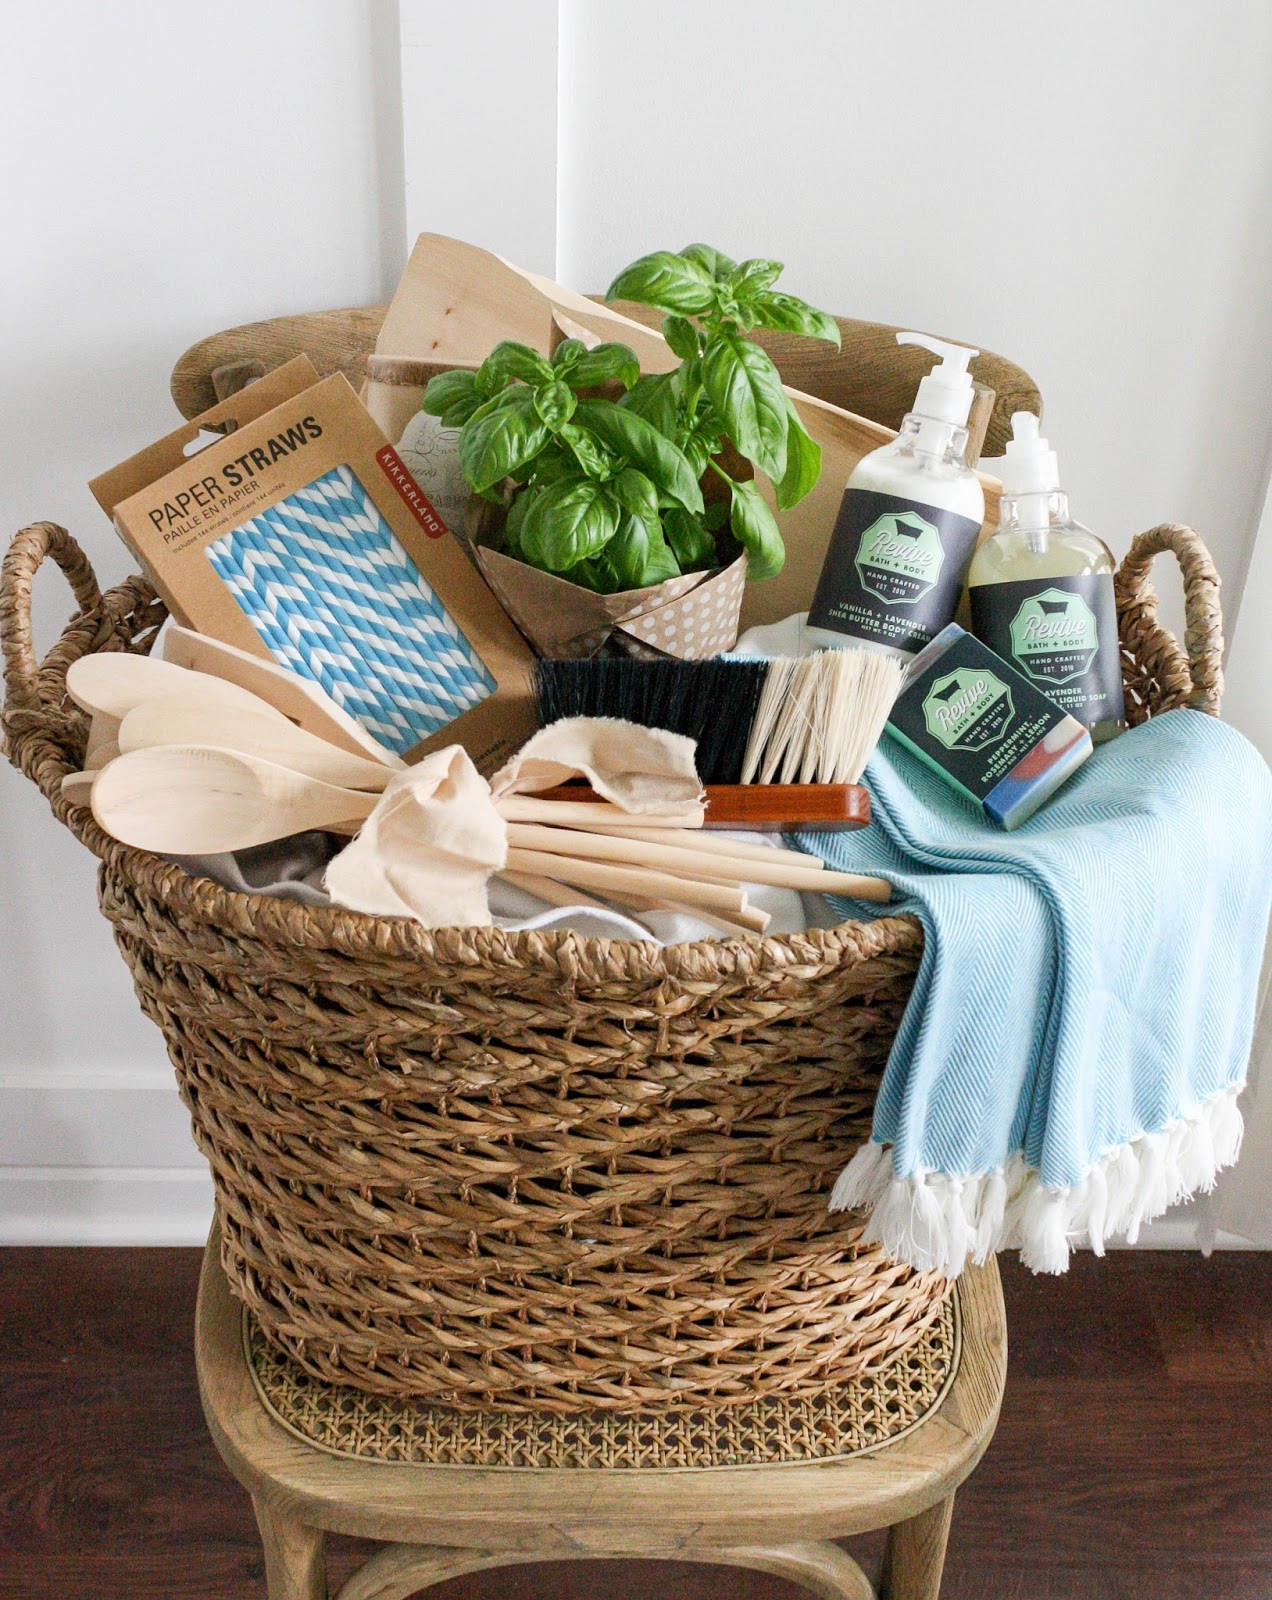 Best ideas about New Home Gift Ideas . Save or Pin WASH WASH WASH Now.